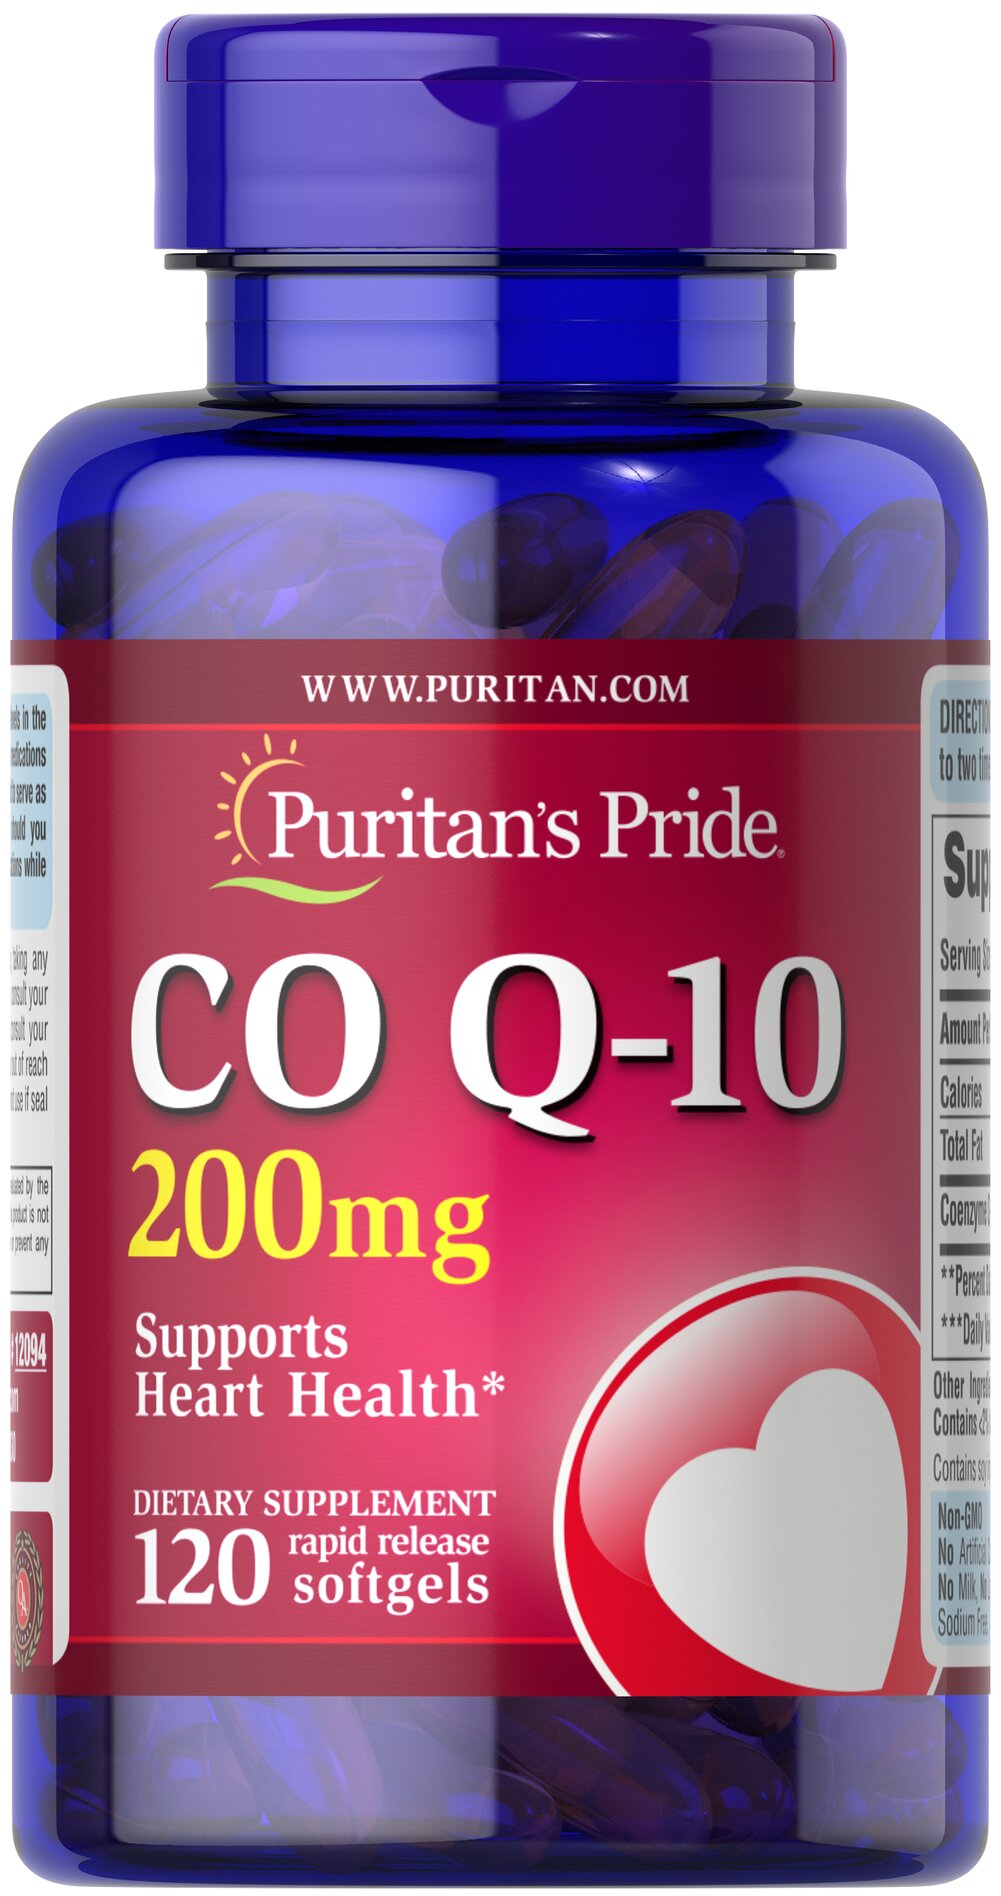 Q-SORB™ Co Q-10 200 mg  120 Rapid Release Softgels 200 mg $54.99